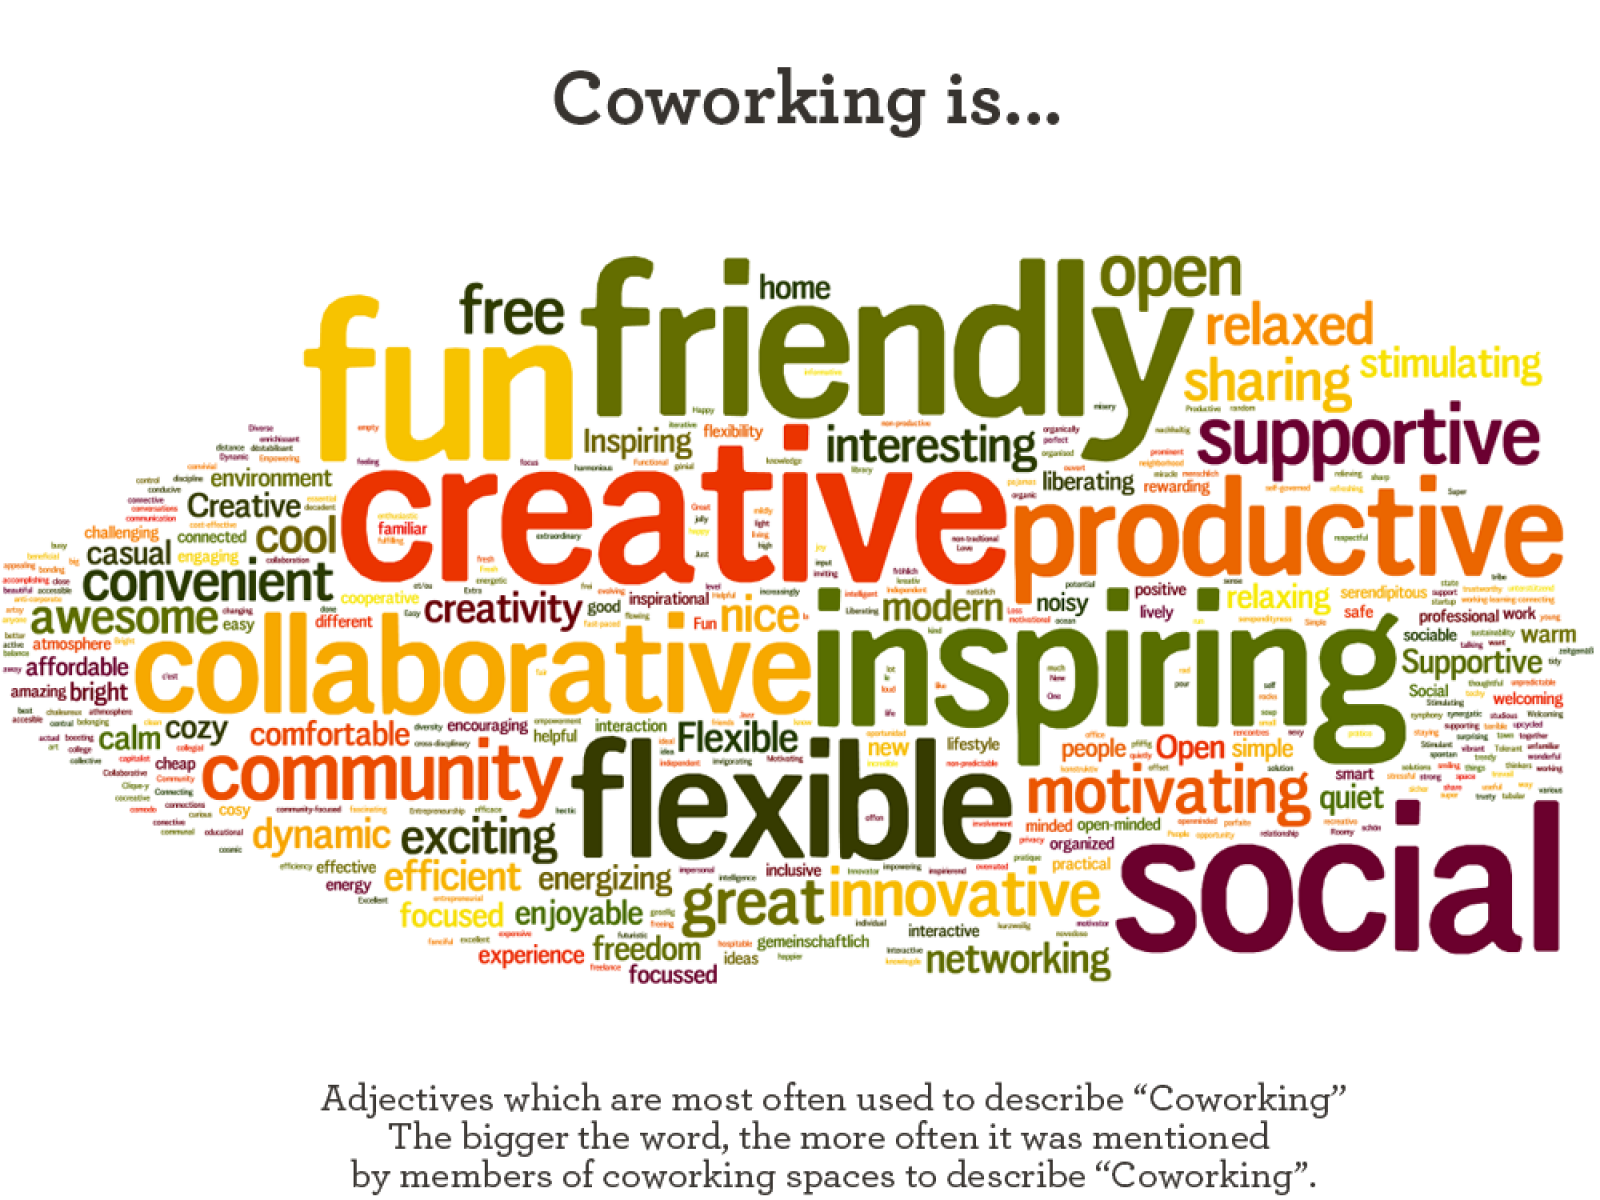 Coworking is...